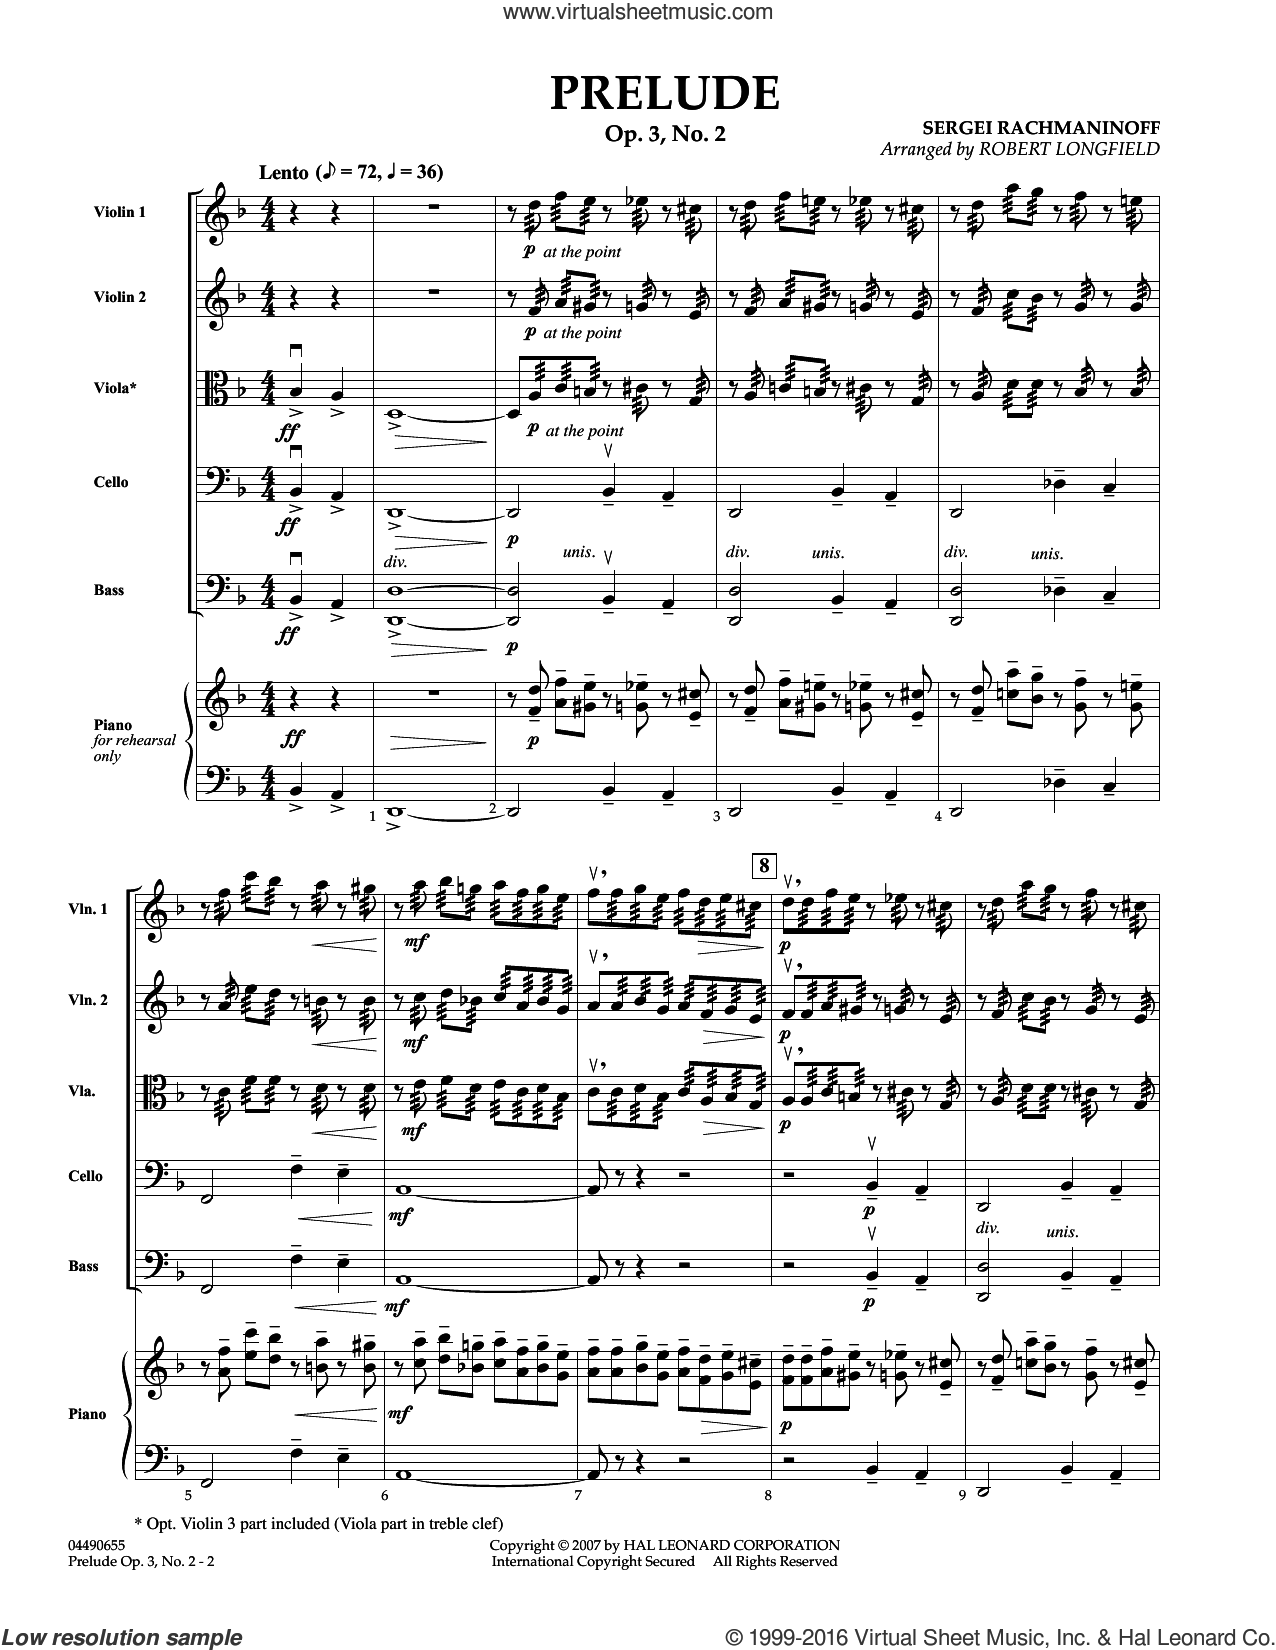 Prelude Op.3, No. 2 (COMPLETE) sheet music for orchestra by Robert Longfield and Serjeij Rachmaninoff. Score Image Preview.